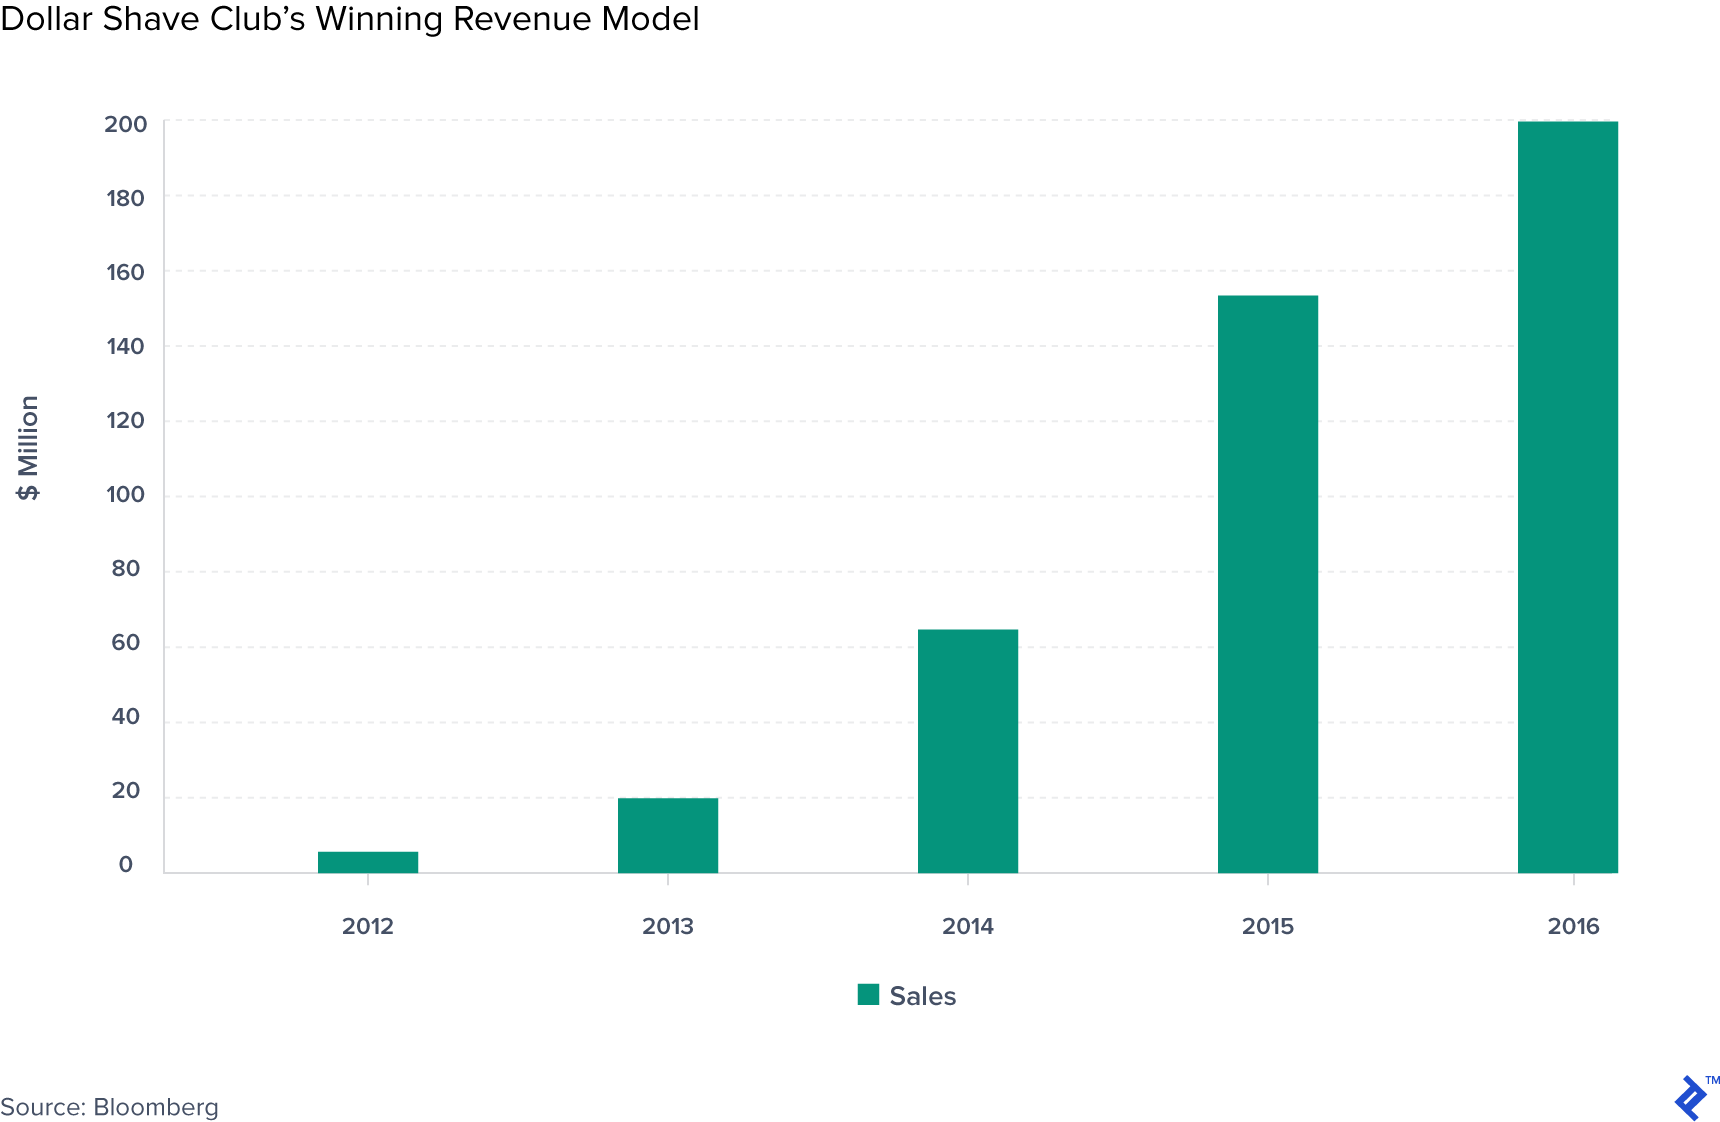 Chart showing Dollar Shave Club's winning revenue model